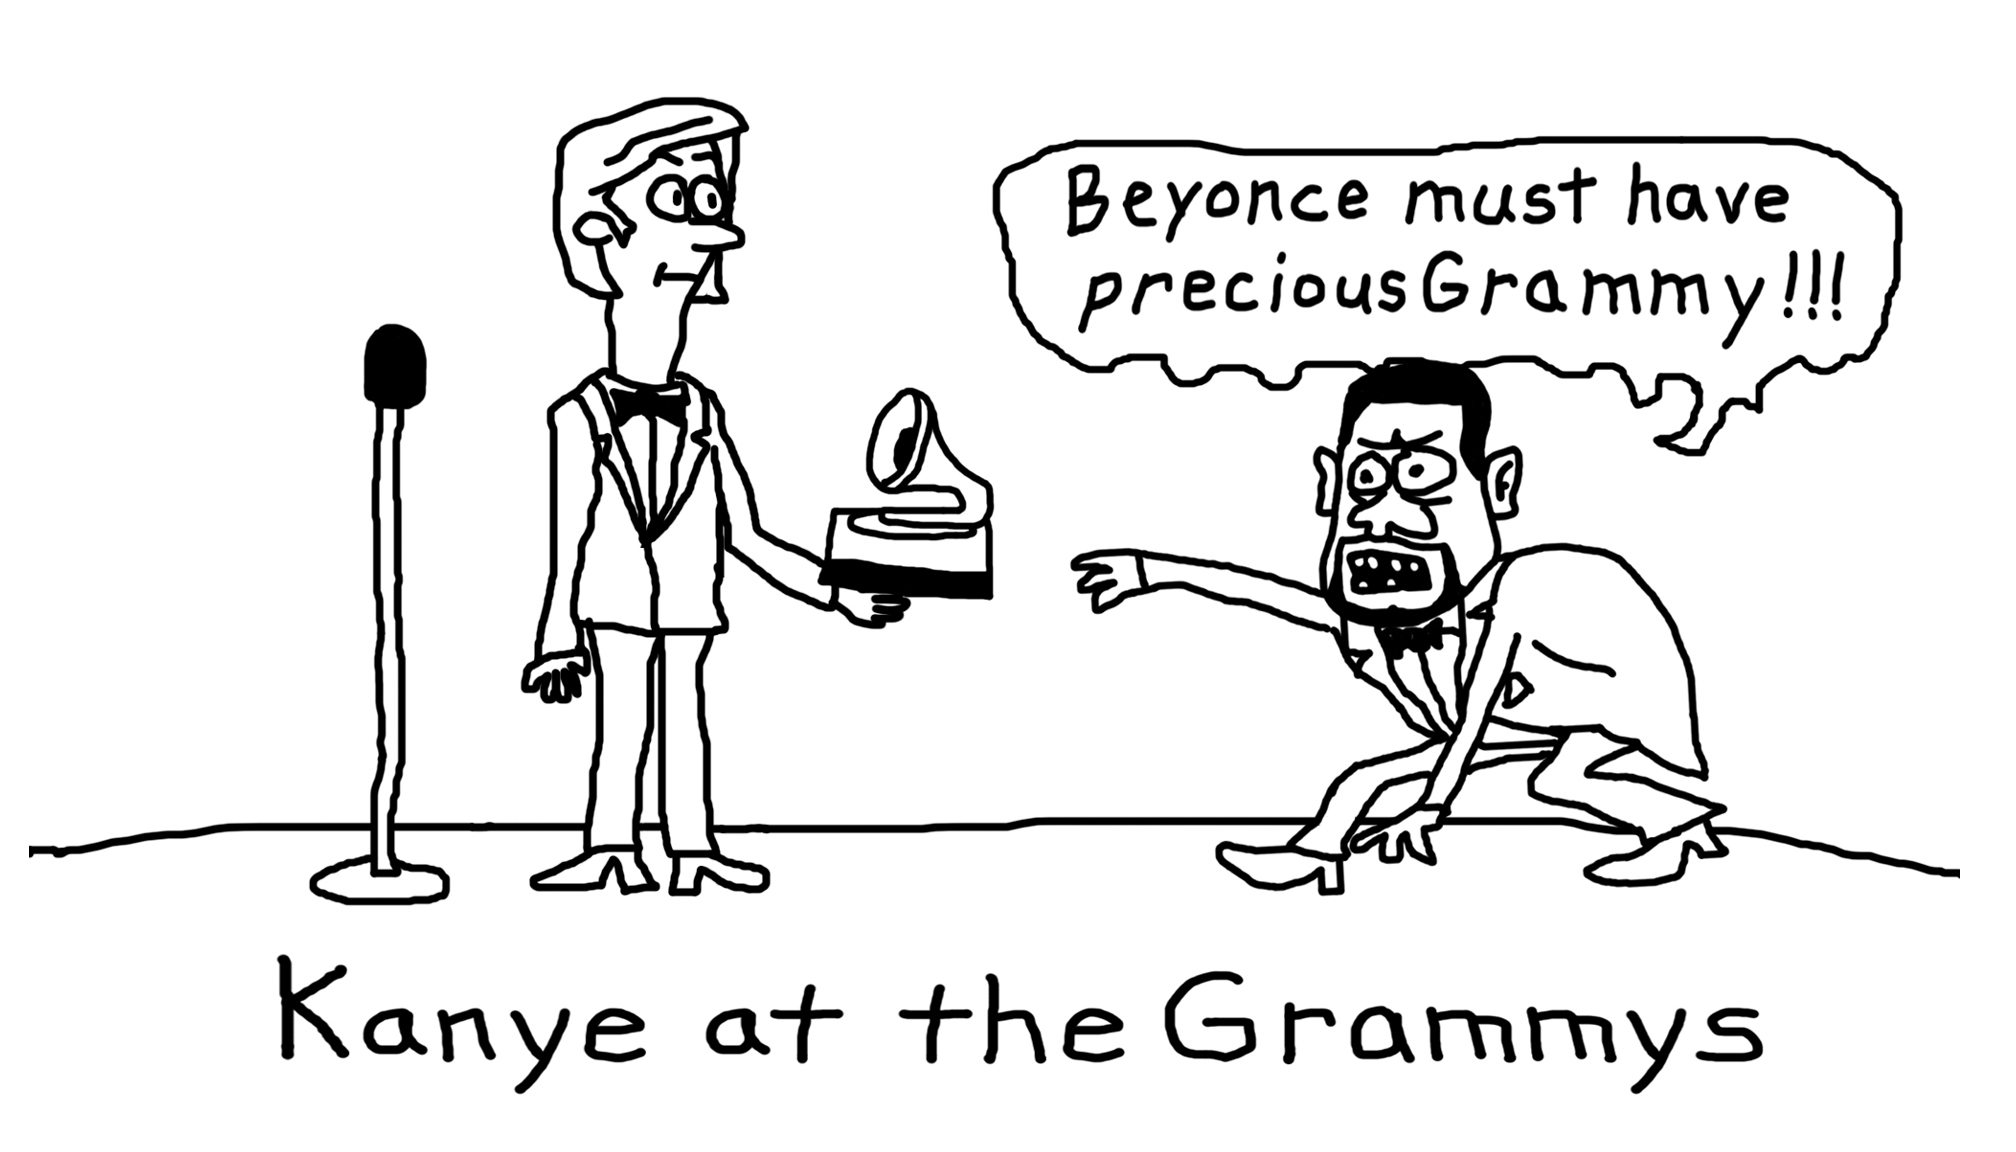 Kanye at the Grammys